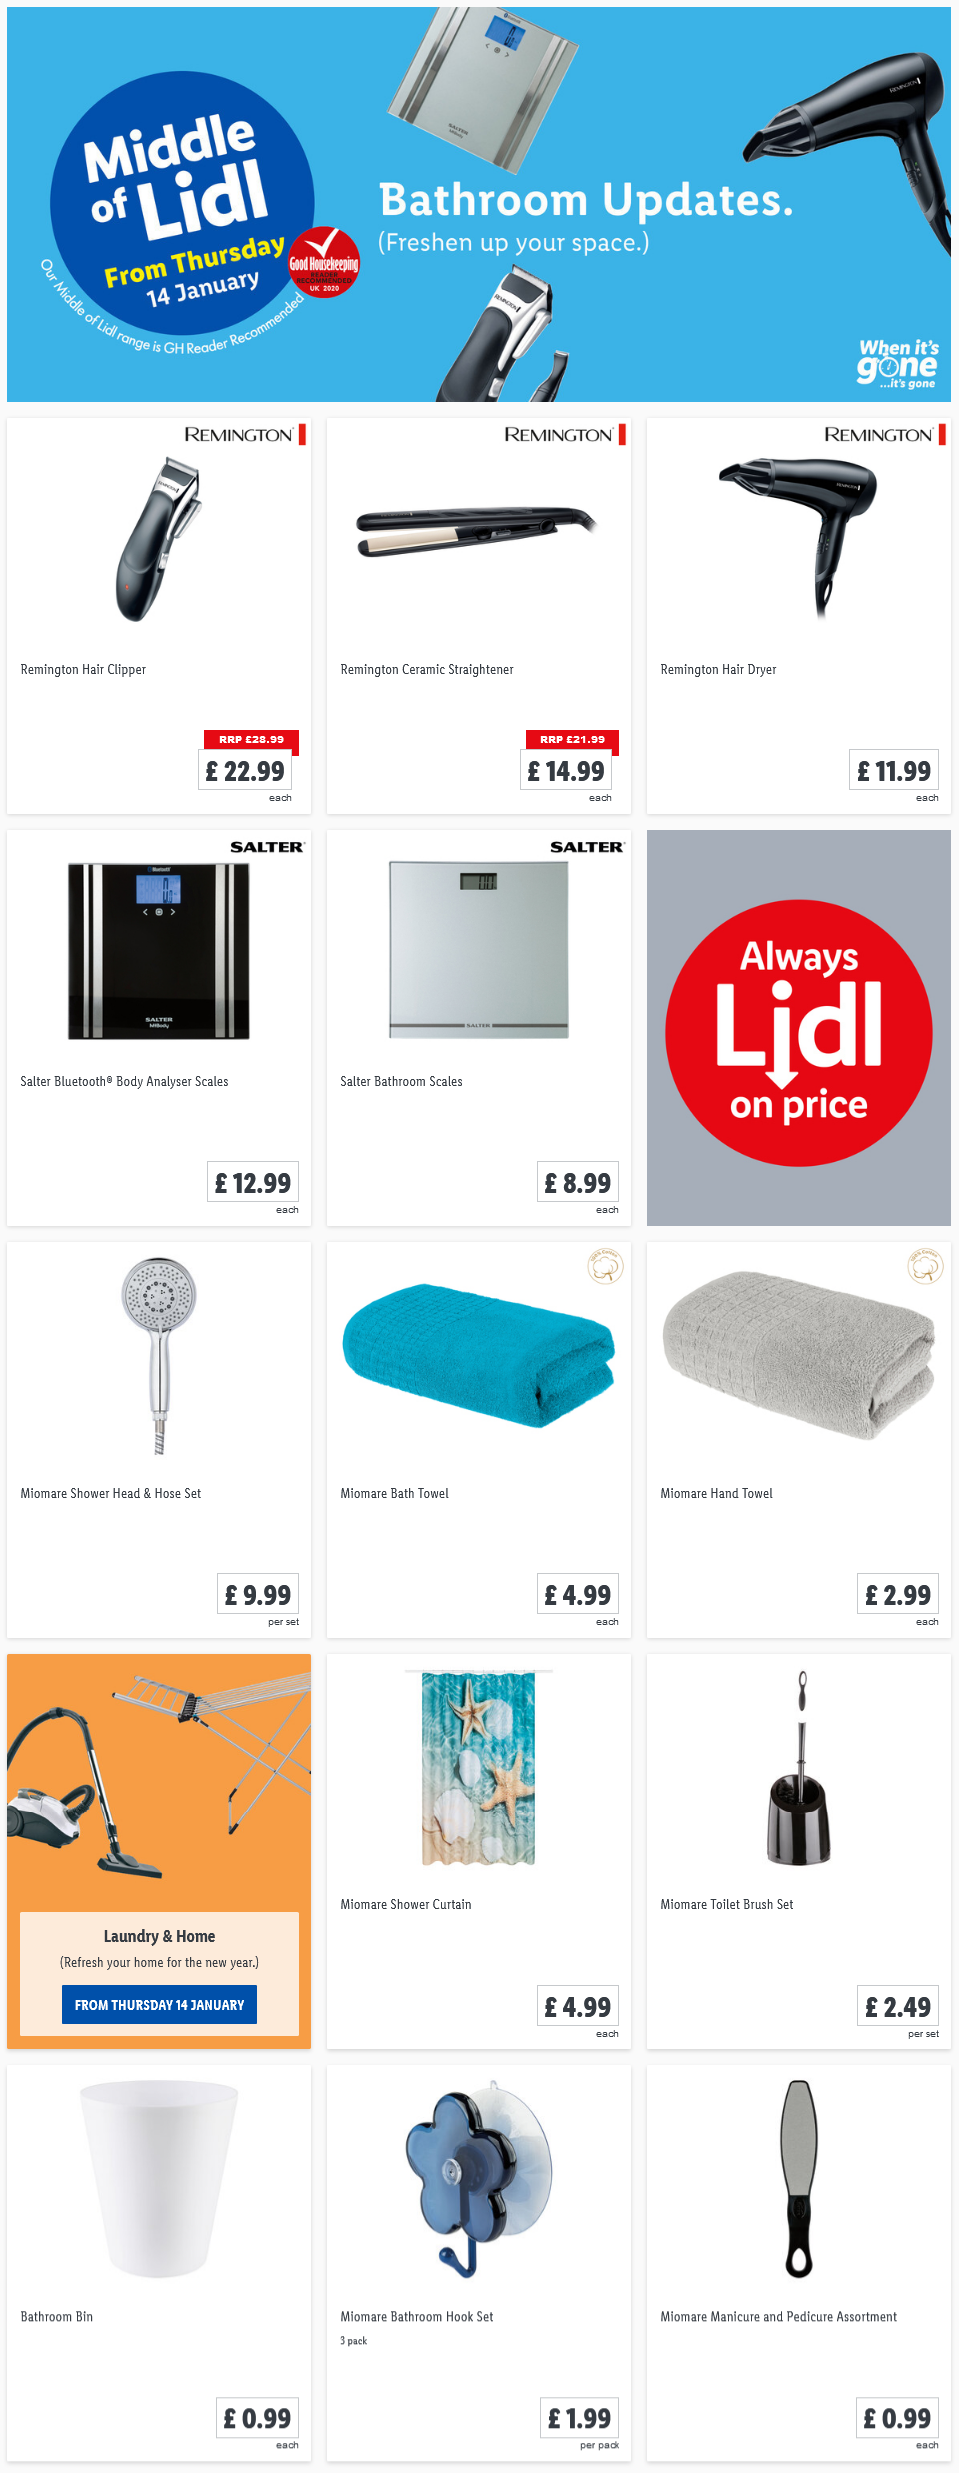 Lidl Bathroom Updates Offers From Thursday, 14th January 2021